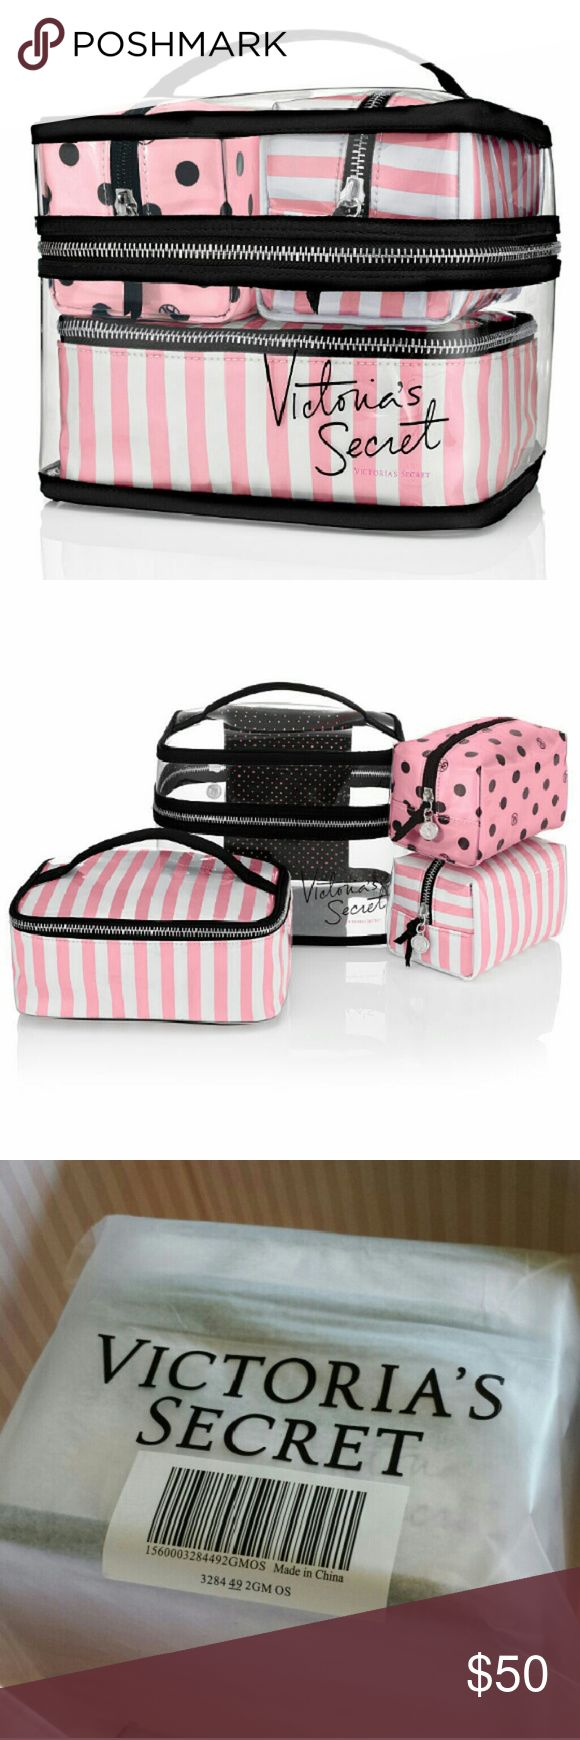 NIP Four piece Travel Case New in package, never opened 4 pc travel bag set in Iconic Stripe/Polka Dot. Hold everything style tote cases, four easy to clean zippered bags in Victoria's Secret signature prints, perfect for carrying your makeup/cosmetics, toiletries, accessories, etc. Made with imported pvc and satin. Victoria's Secret Bags Travel Bags